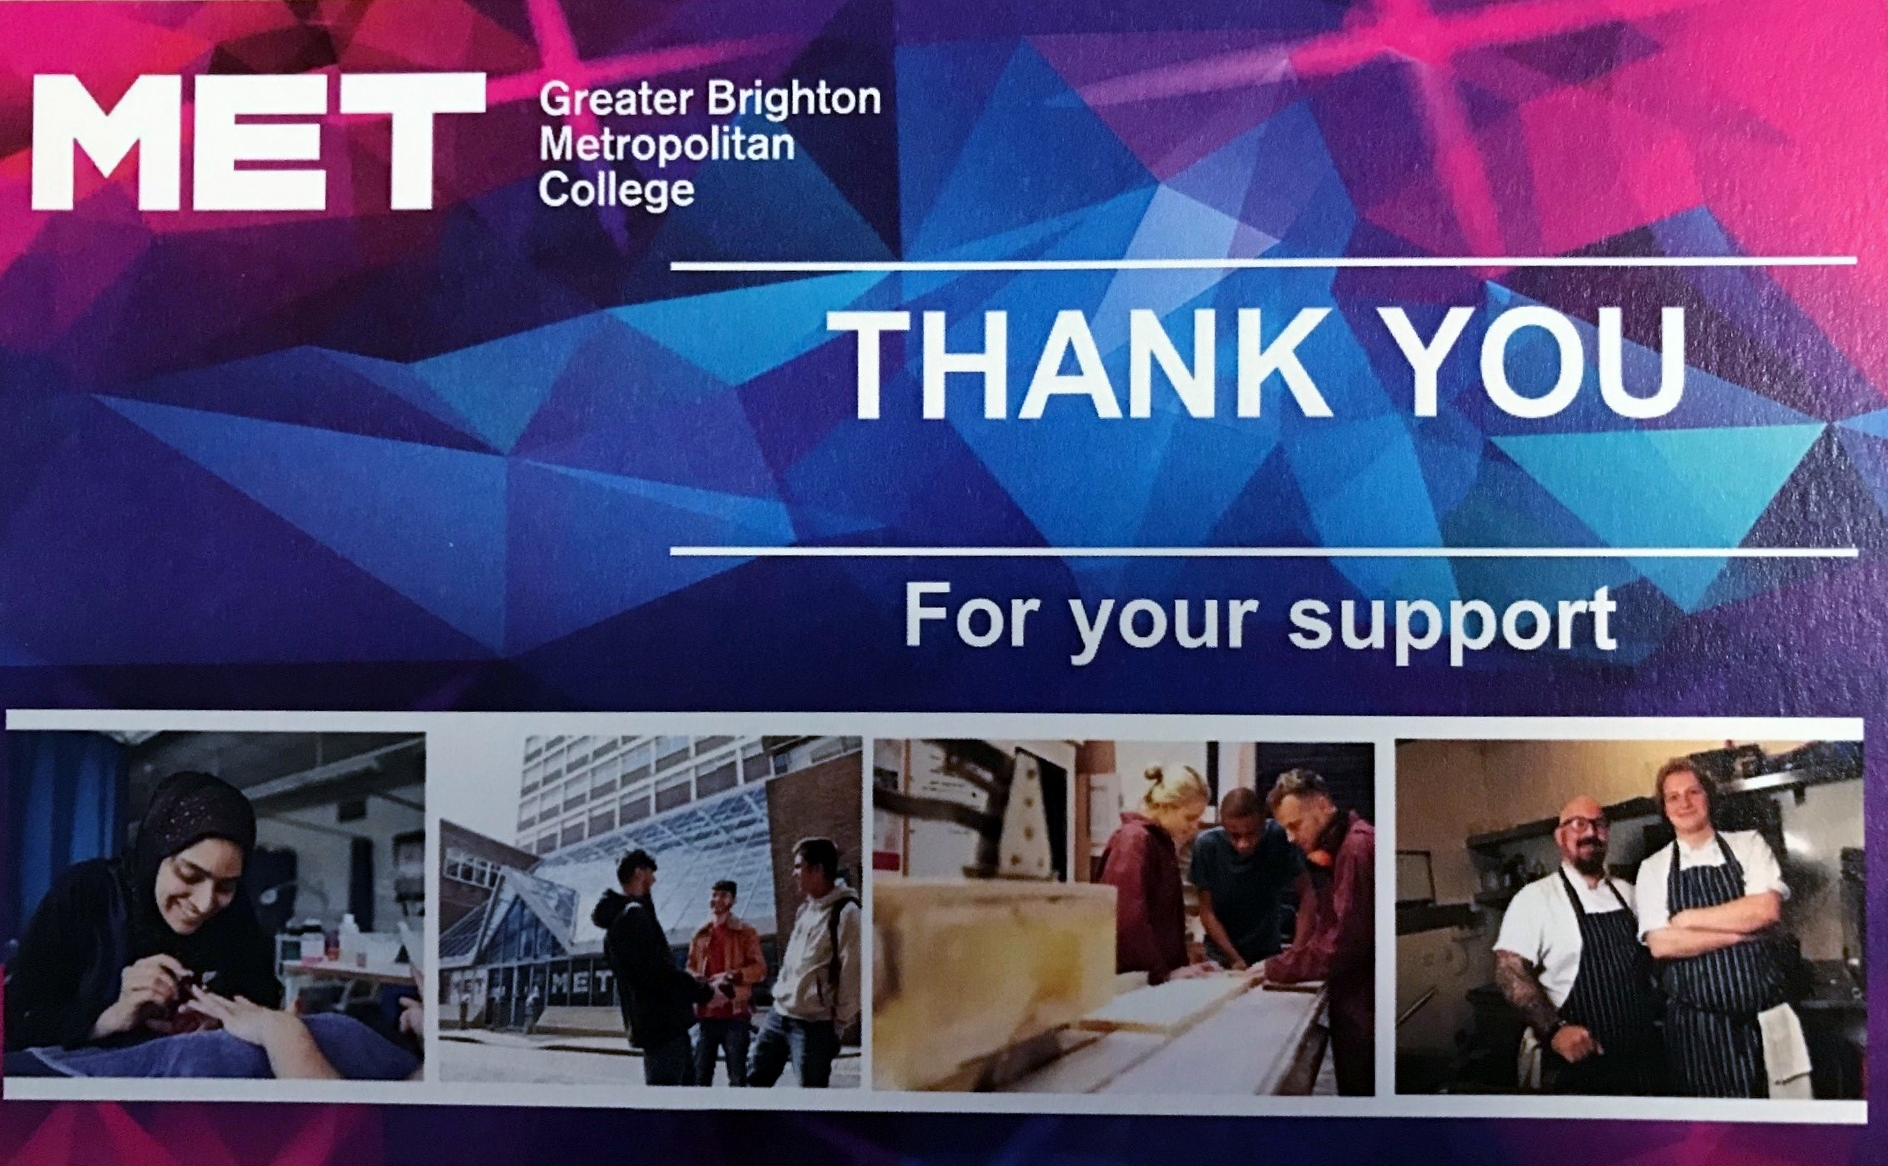 MET Greater Brighton Metropolitan College